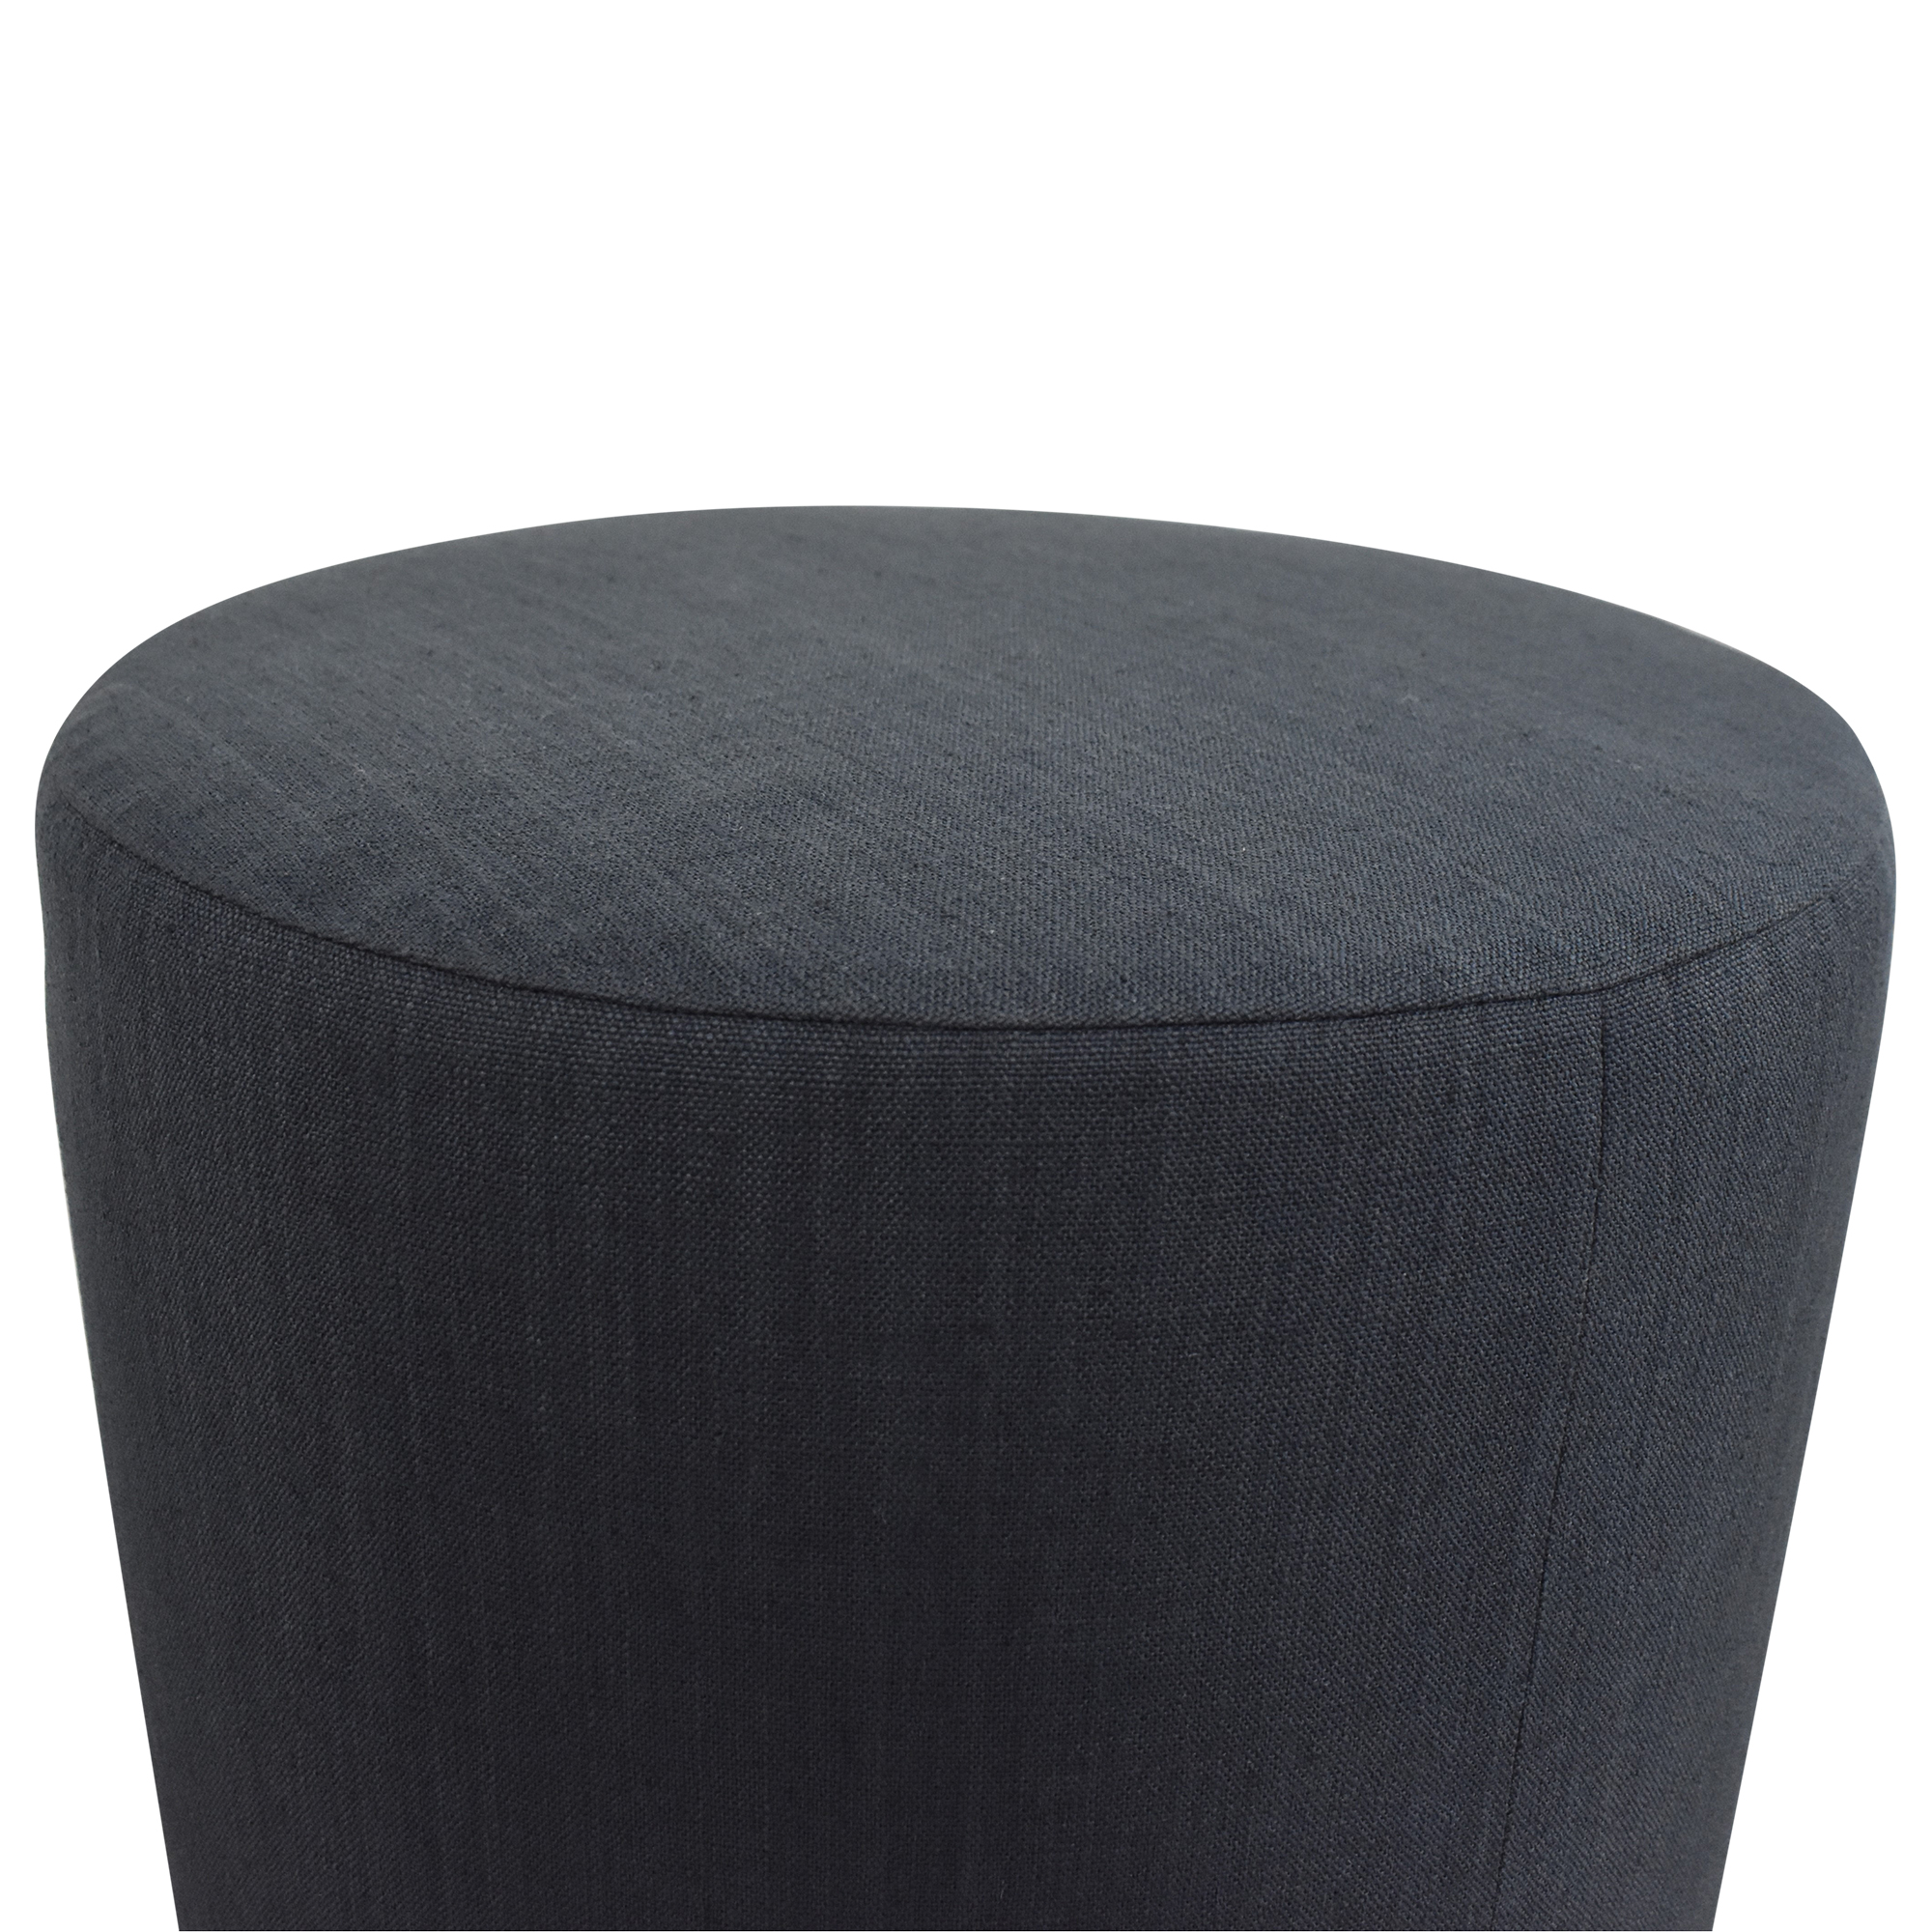 The Inside The Inside Drum Ottoman ct